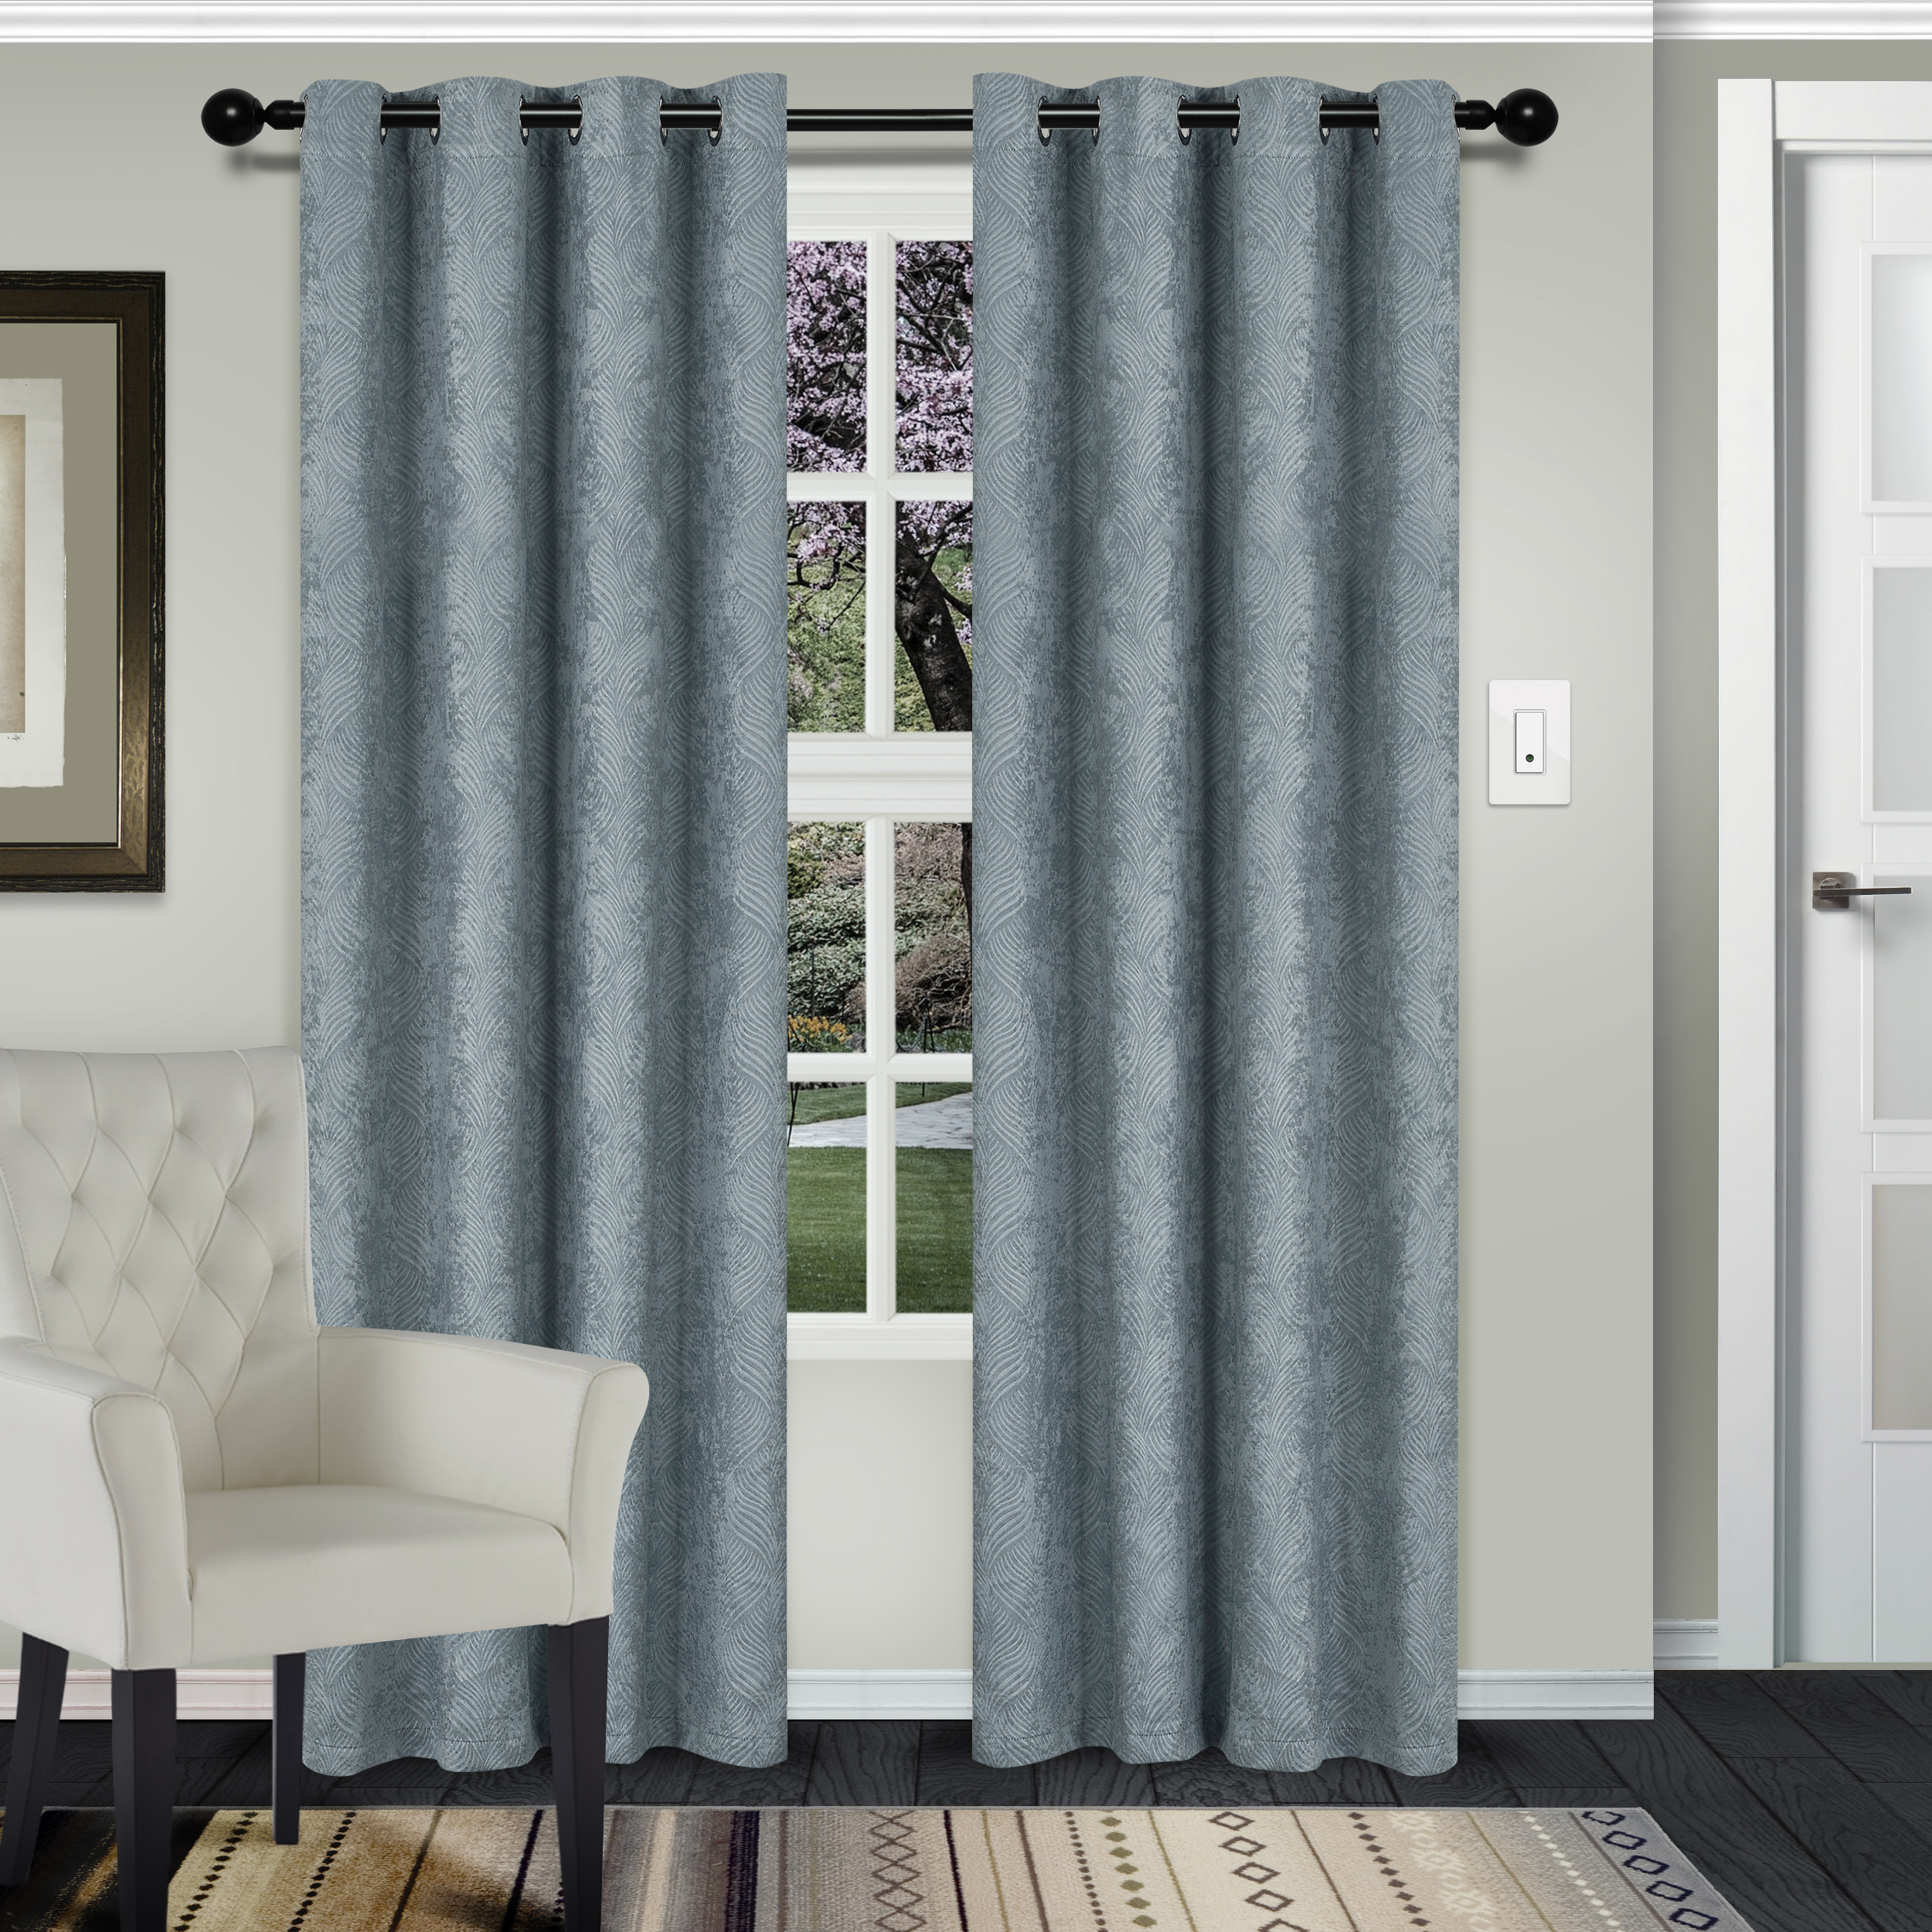 Recent Superior Waverly Textured Blackout Curtain Set Of 2, Thermal In Superior Solid Insulated Thermal Blackout Grommet Curtain Panel Pairs (View 12 of 20)